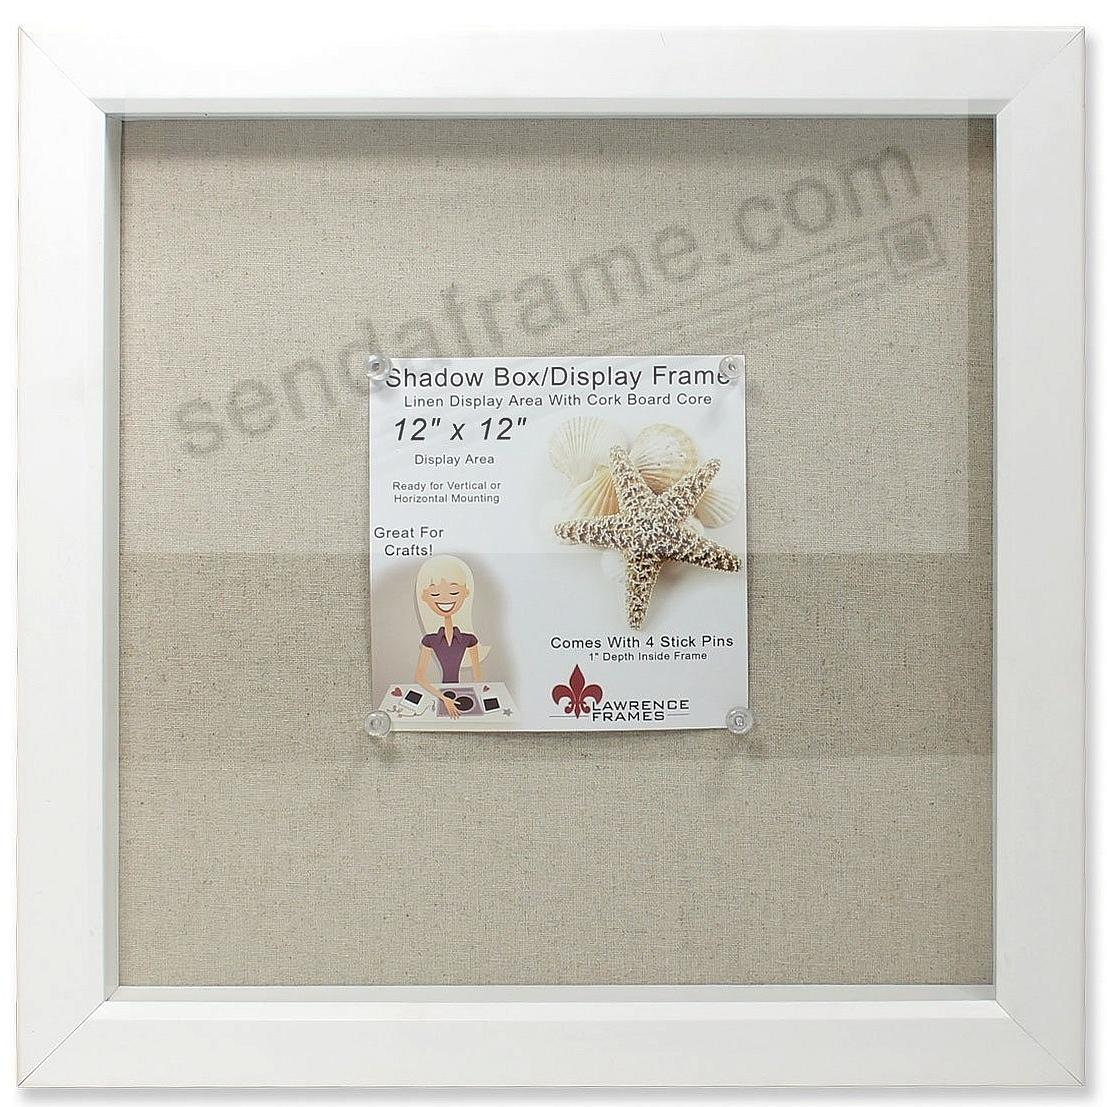 White-stained deep craft linen-lined 12x12 ShadowBox by Lawrence®